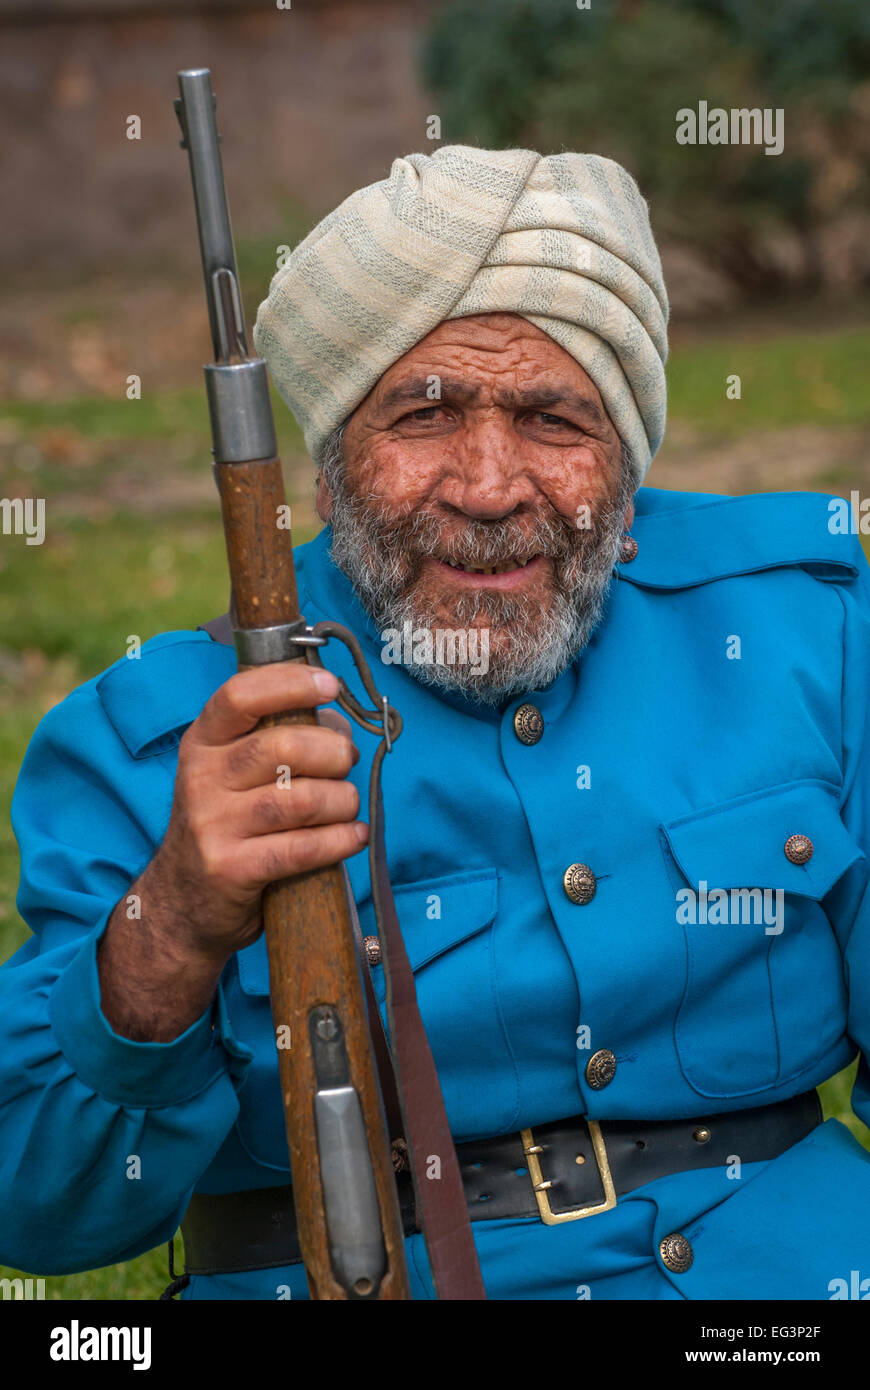 Tehran, Iran-Jan,14,2010: An actor dressed as a British Indian Army soldier  getting ready to act in a movie. - Stock Image